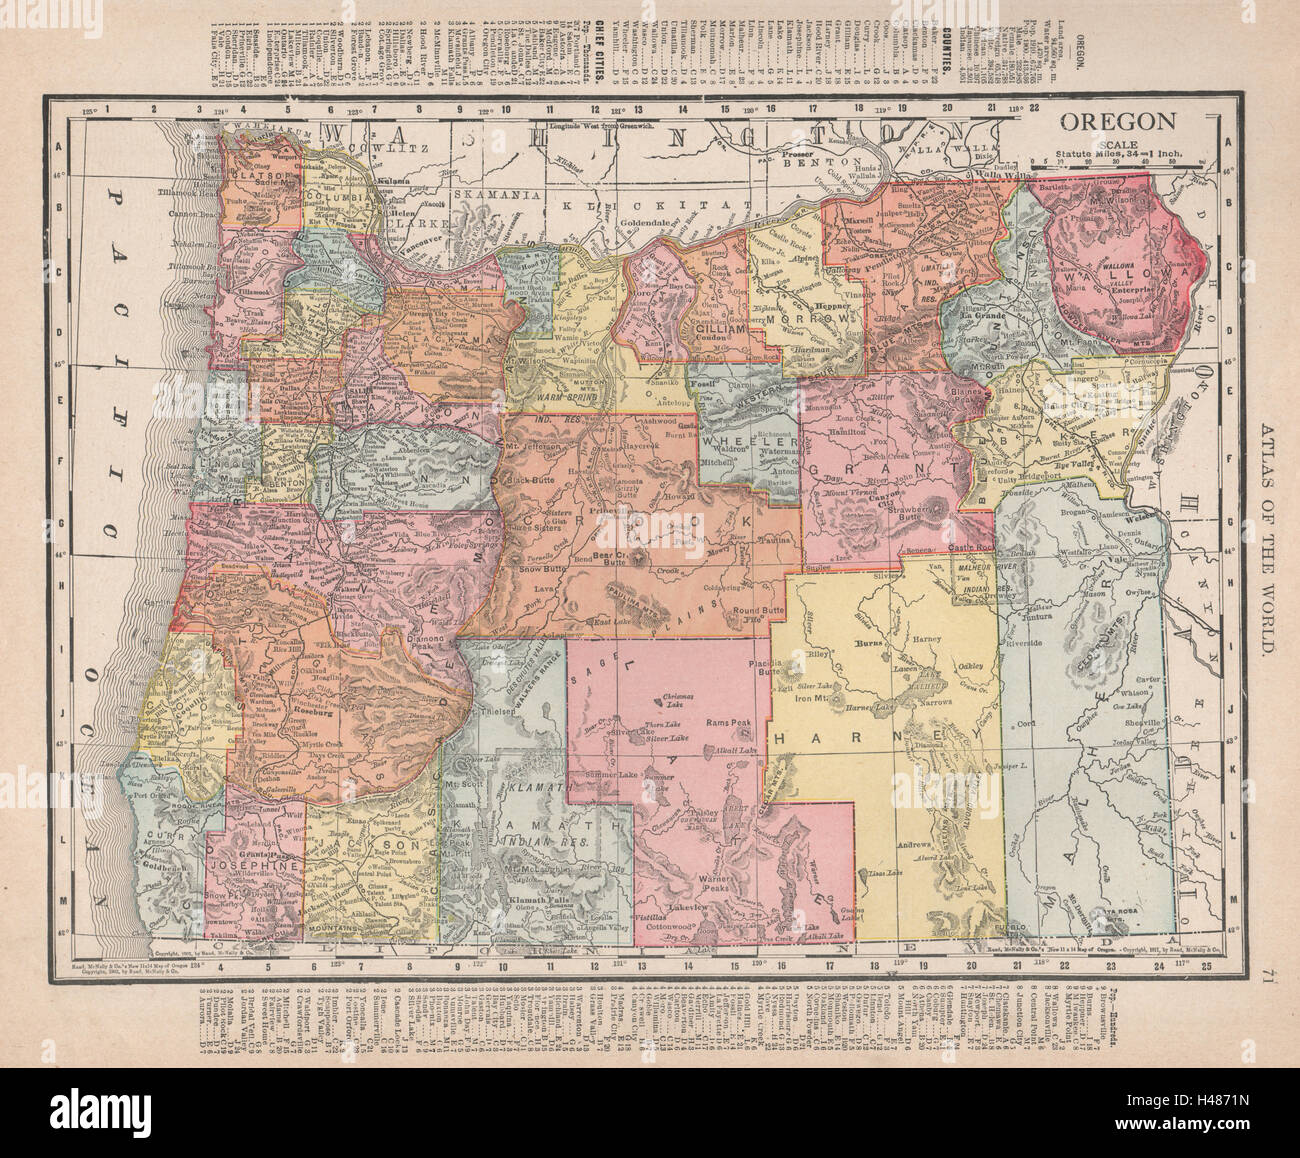 Oregon state map showing counties. RAND MCNALLY 1912 old antique ...